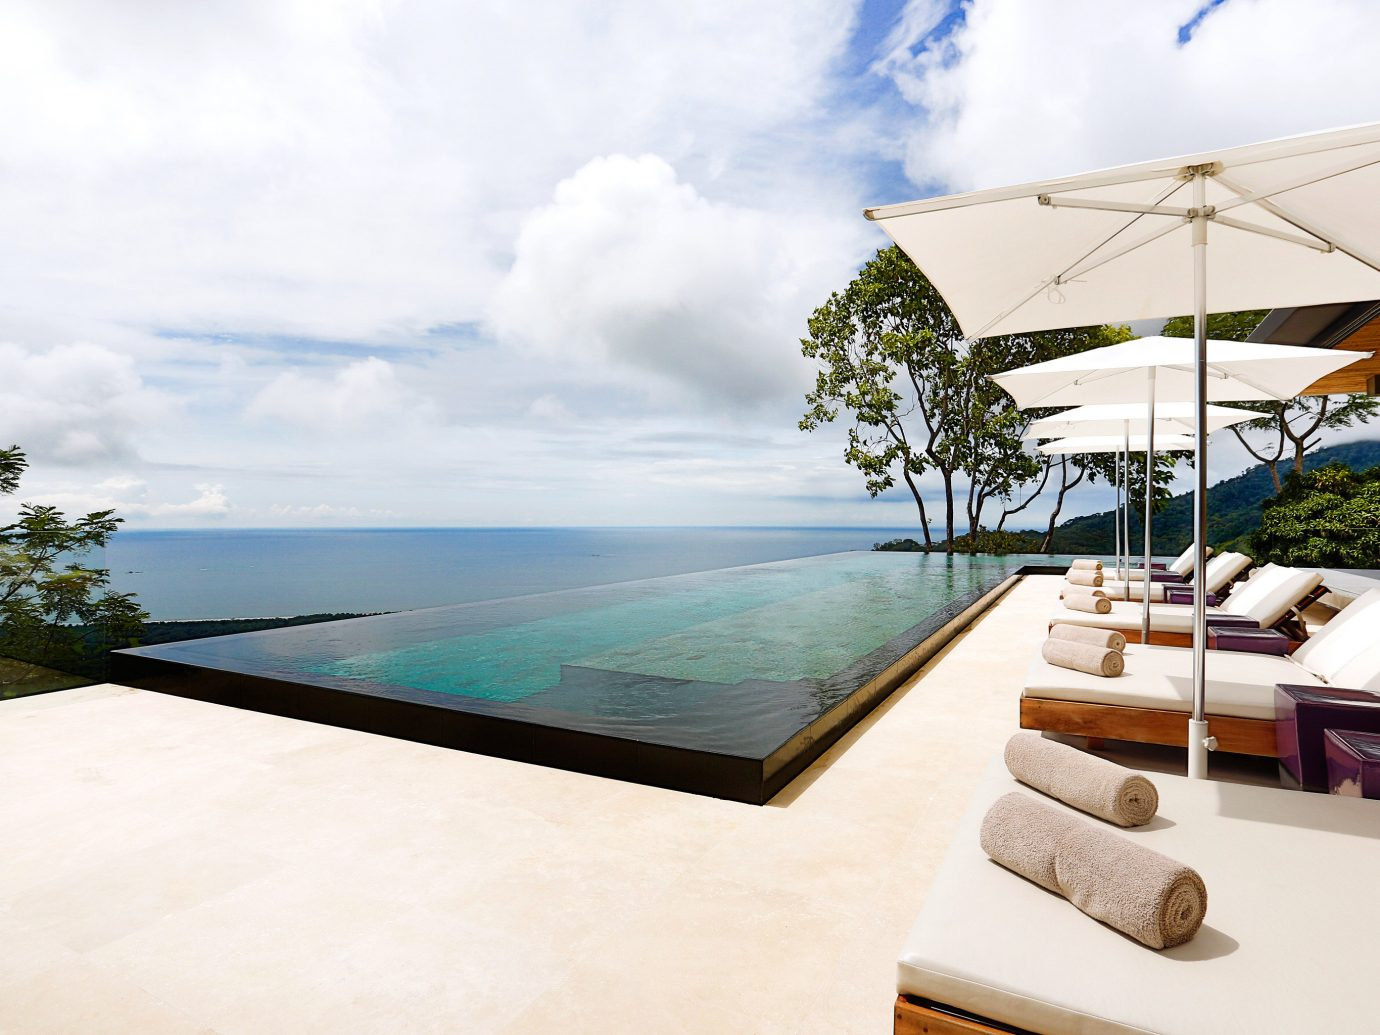 Infinity Pool At Kura Design Villas In Costa Rica